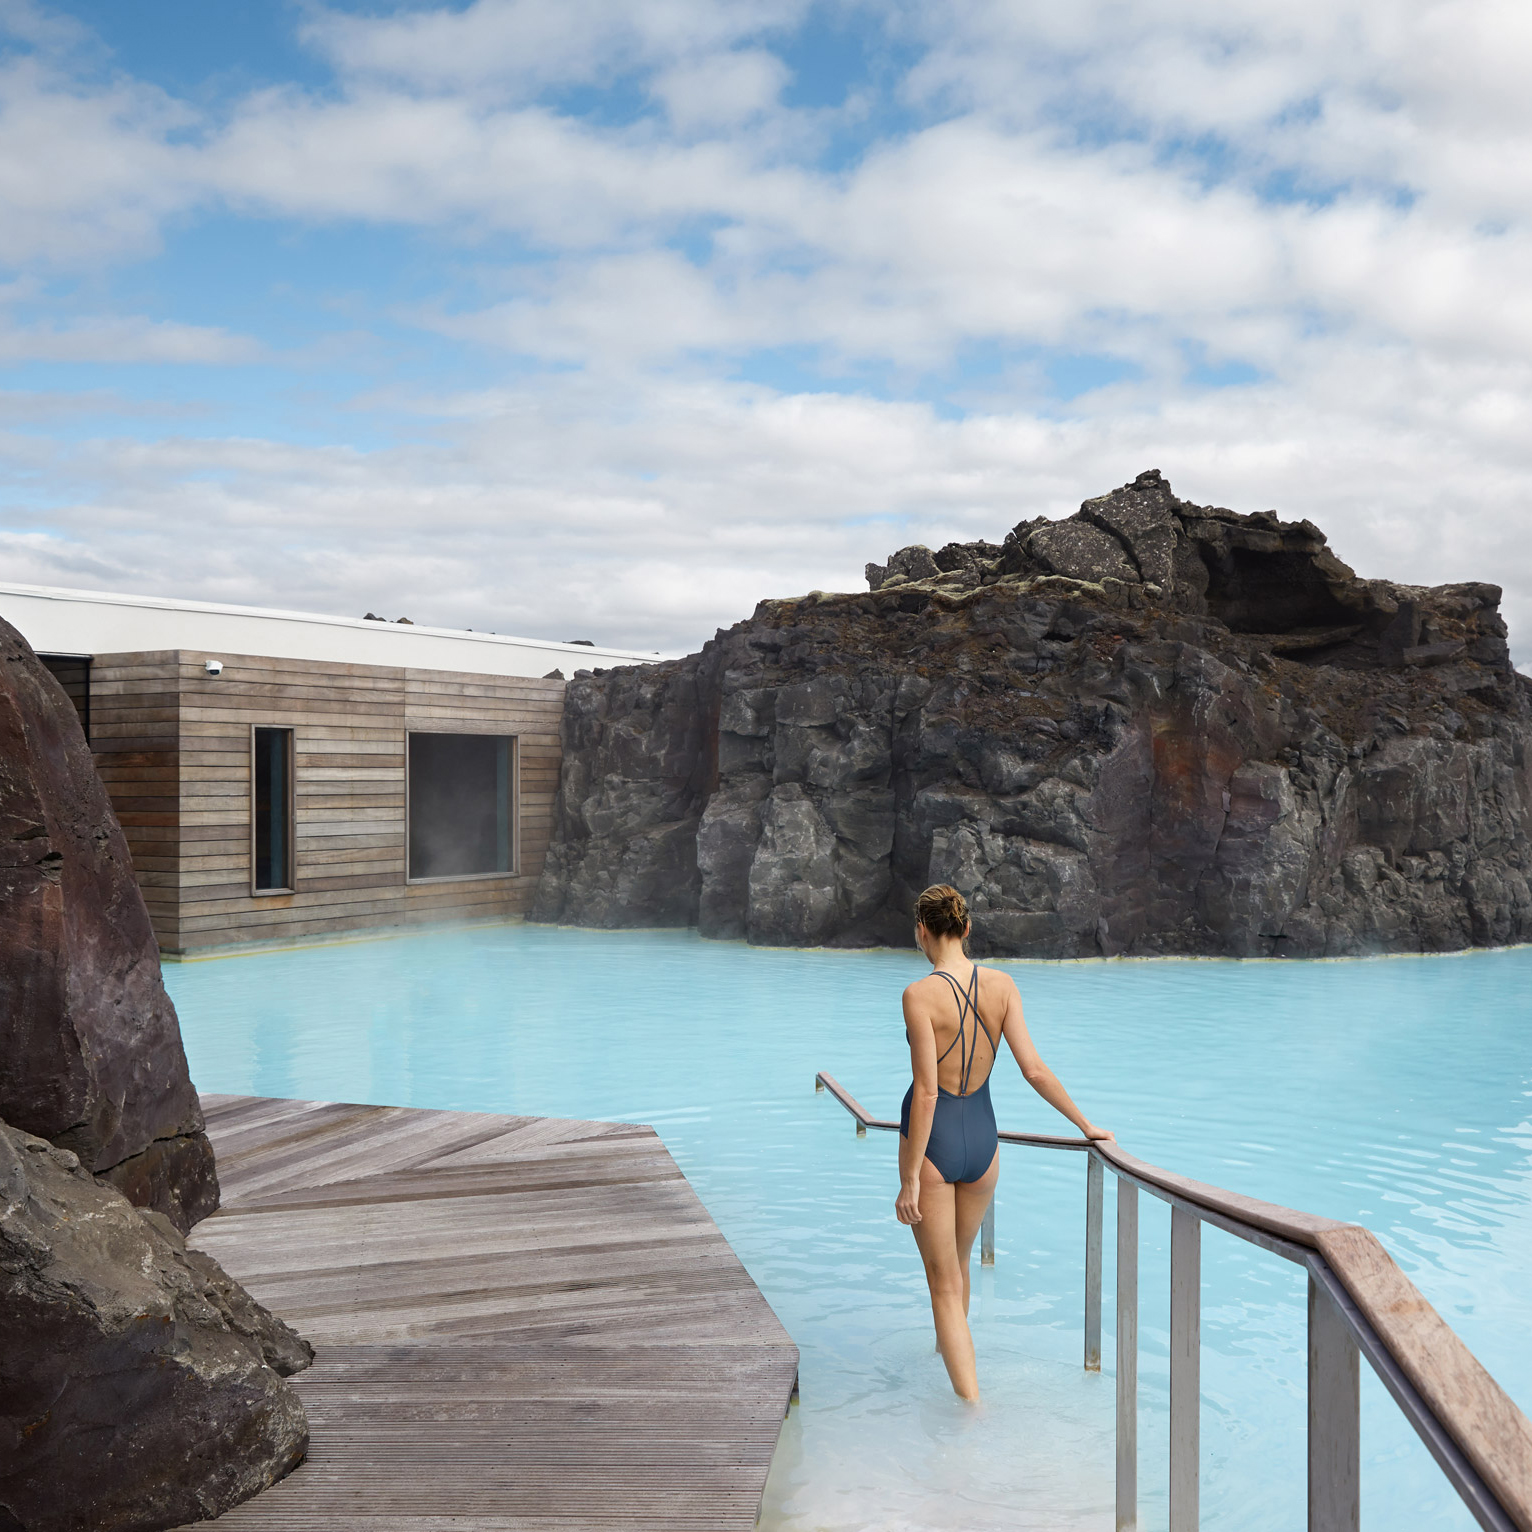 Basalt Architects completes hotel at Iceland's Blue Lagoon ... on namibia house plans, west coast house plans, gambia house plans, india house plans, pacific northwest house plans, united states of america house plans, china house plans, belgium house plans, guyana house plans, mexico house plans, new zealand house plans, england house plans, caribbean house plans, dominica house plans, korea house plans, angola house plans, thailand house plans, ghana house plans, libya house plans, belize house plans,